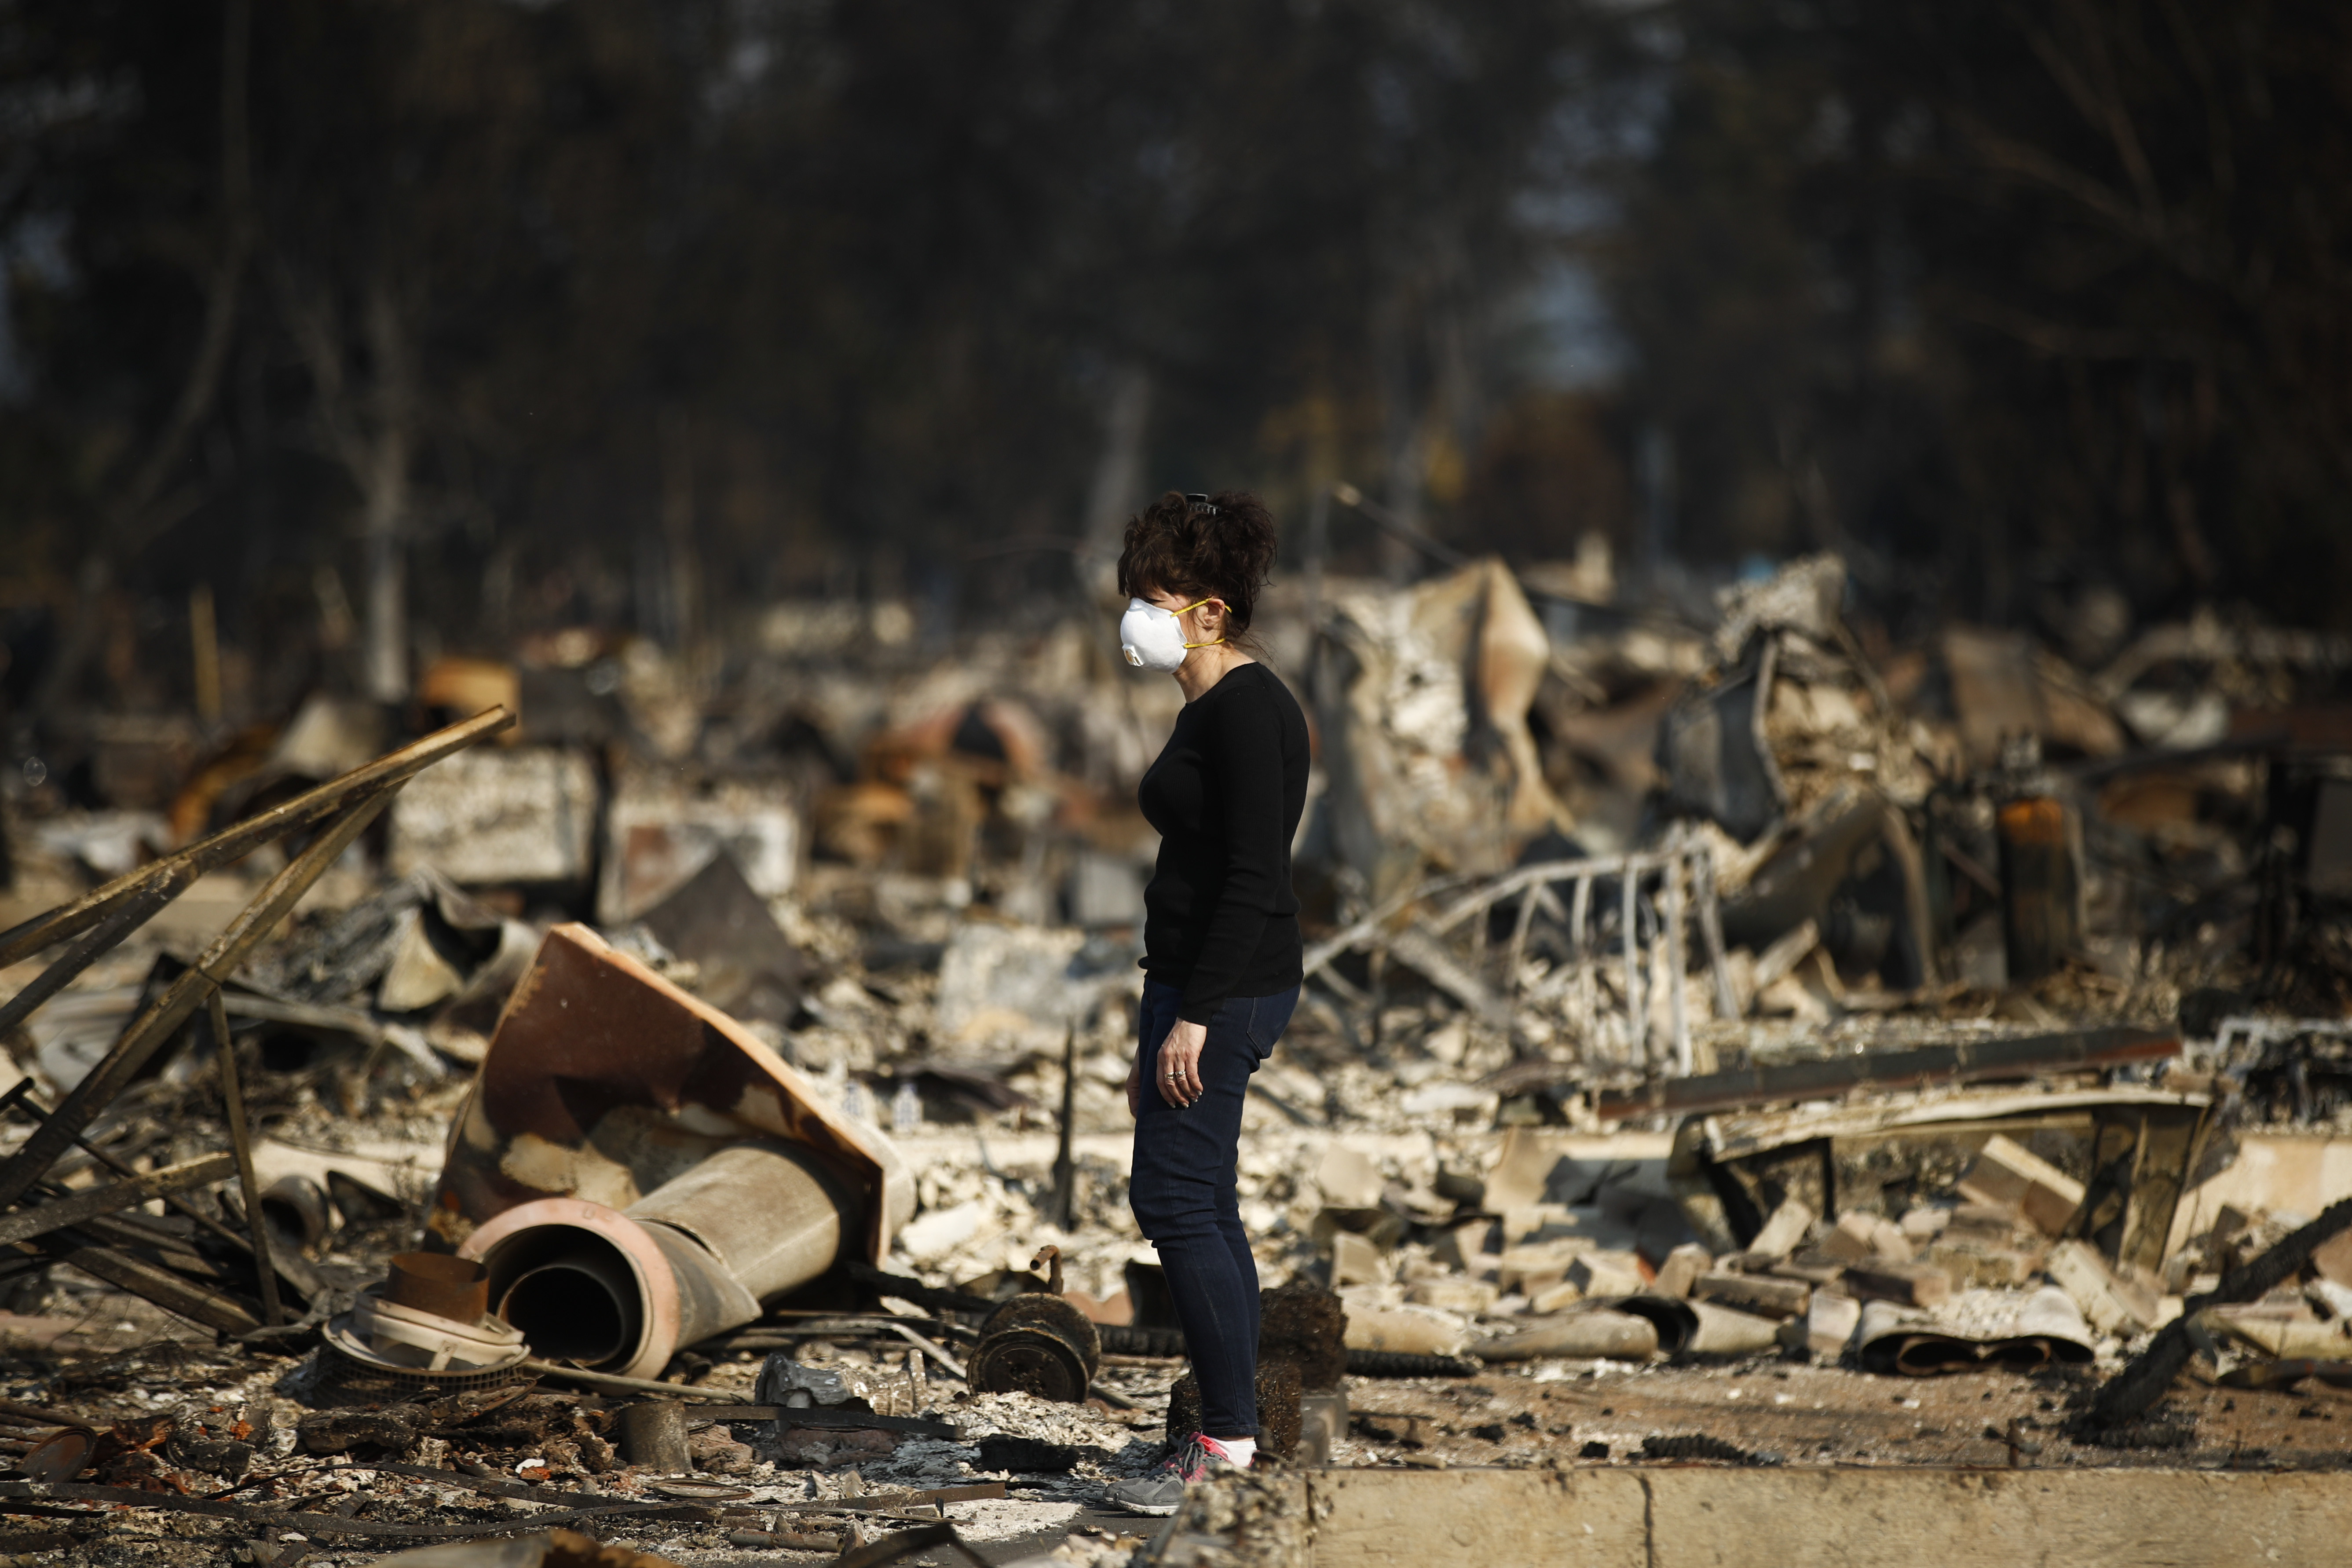 <div class='meta'><div class='origin-logo' data-origin='none'></div><span class='caption-text' data-credit='Jae C. Hong/AP Photo'>Karen Curzon stands in what remains of her home, which was destroyed by a wildfire in the Coffey Park neighborhood, Sunday, Oct. 15, 2017, in Santa Rosa, Calif.</span></div>